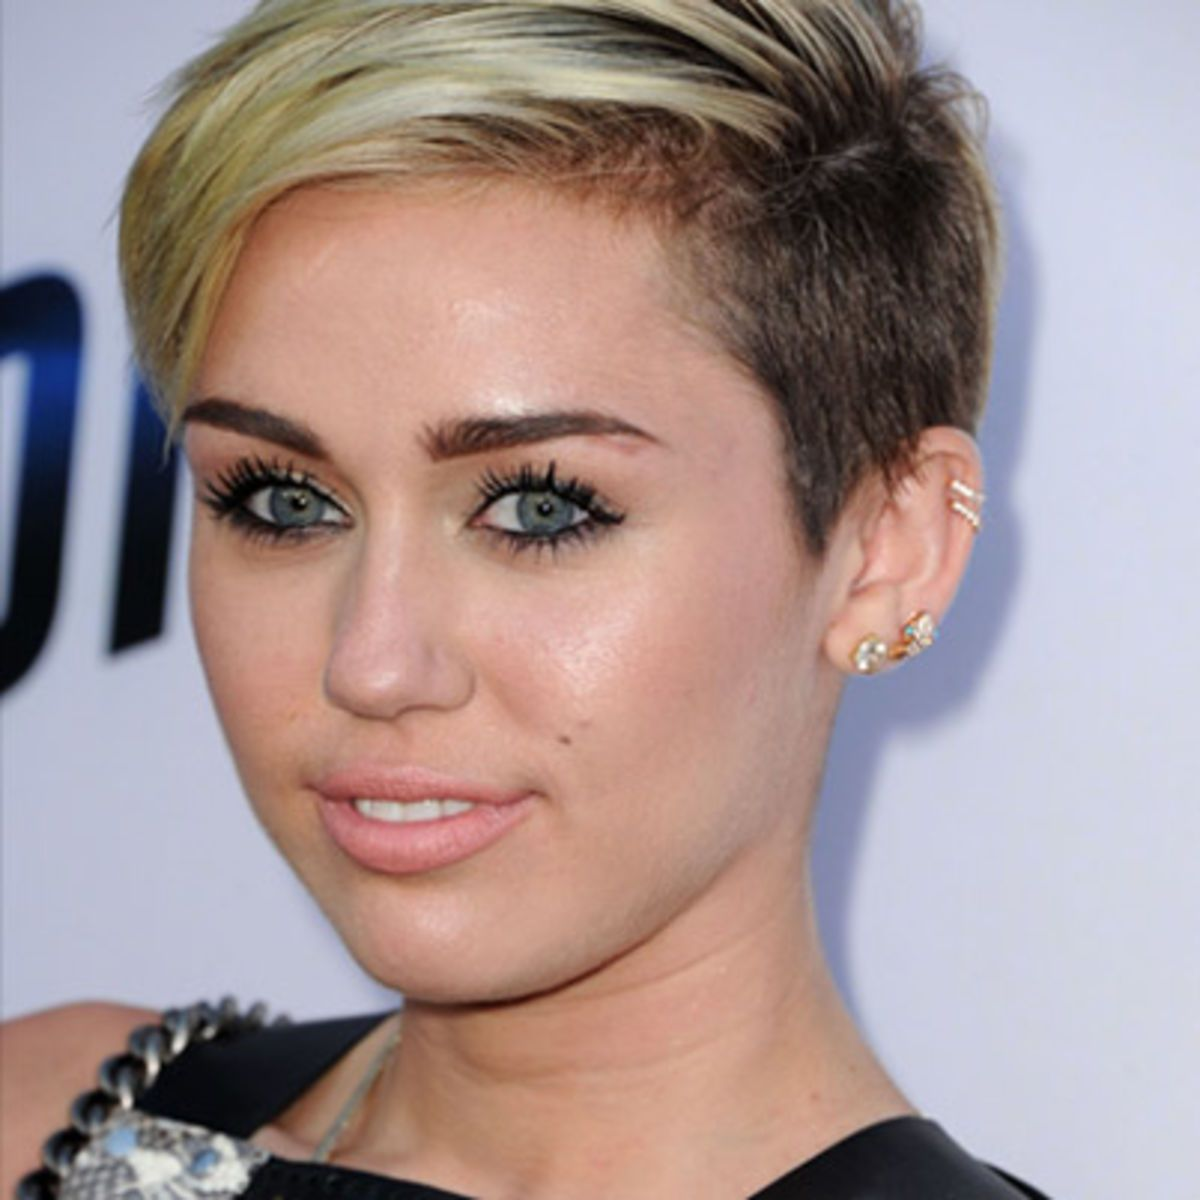 On Biography.com, get more on actress/singer Miley Cyrus, daughter of country star Billy Ray Cyrus, from starring on Disney's <i>Hannah Montana</i> series to her provocative performance at the VMAs in 2013.